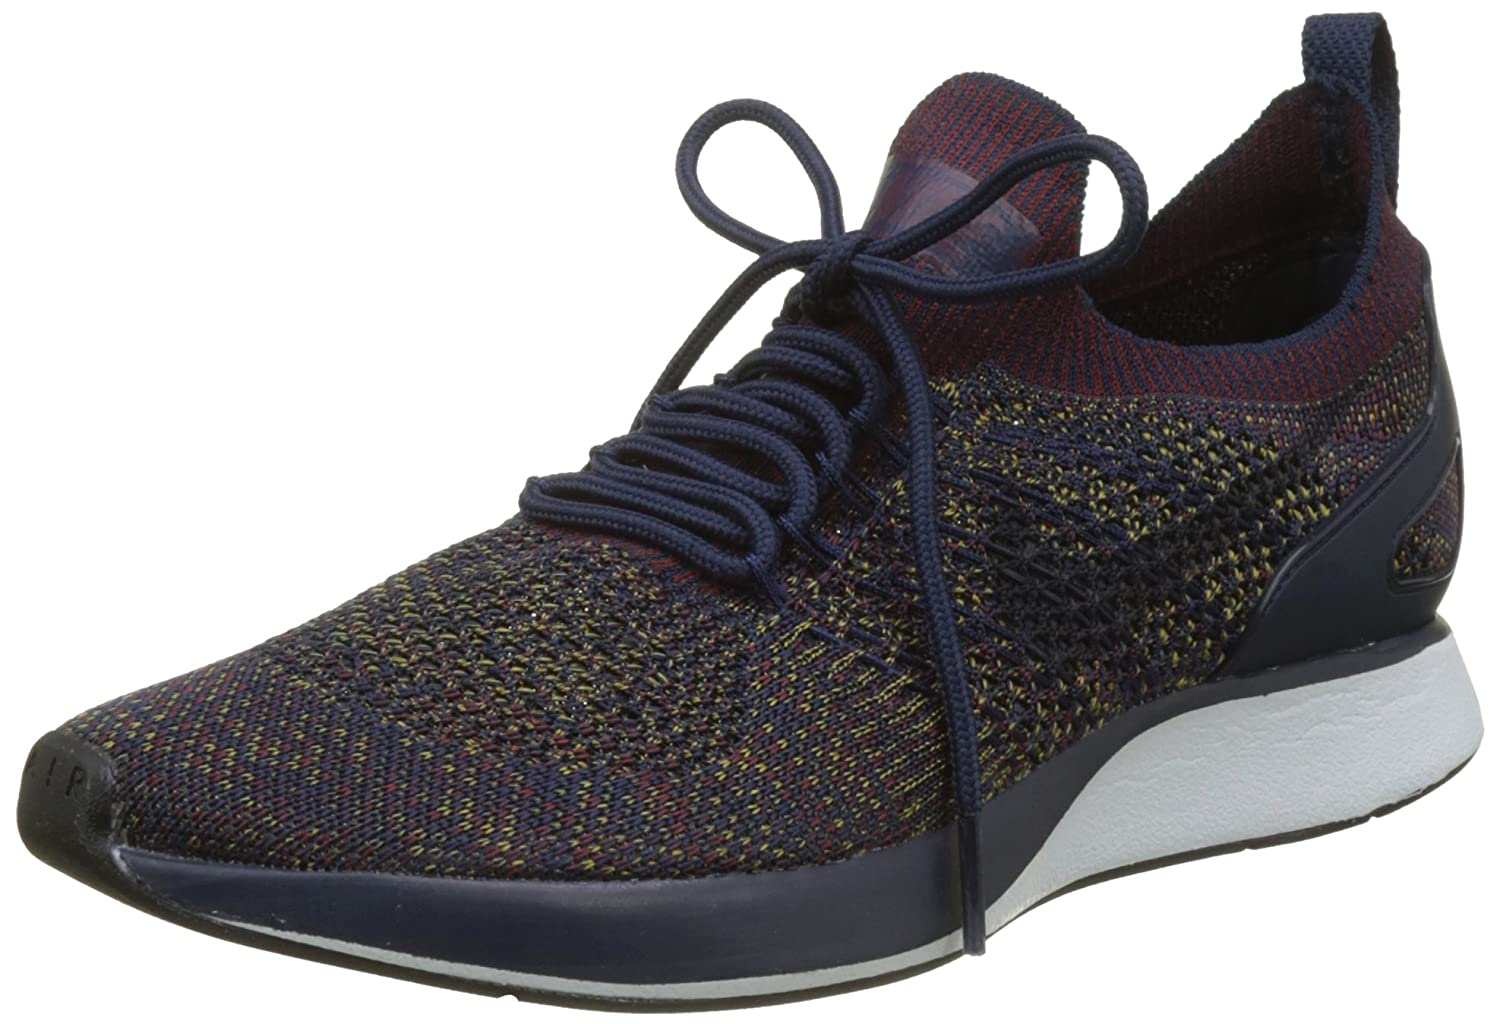 exclusive deals recognized brands pick up Nike Men's Air Zoom Mariah Flyknit Racer Trainers